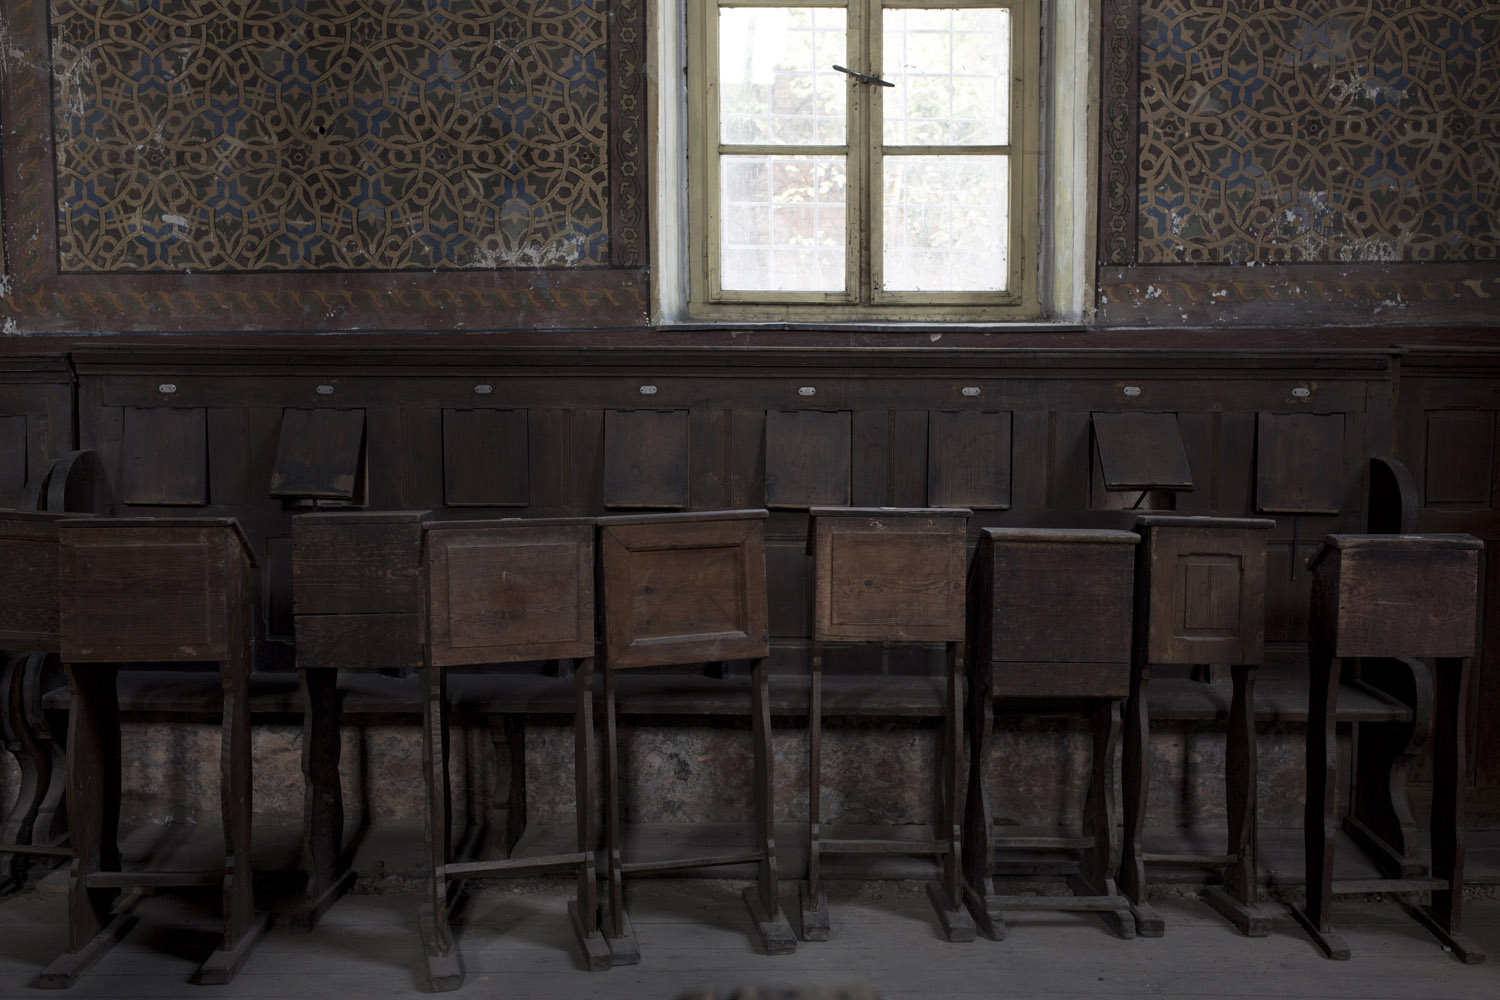 Empty prayer stalls in the synagogue of Khust. With great efforts, the community managed to restore the building and the interior is more or less intact, but there aren't enough Jews to fill it, so the Jews of Khust find it less depressing to use a smaller side room instead.